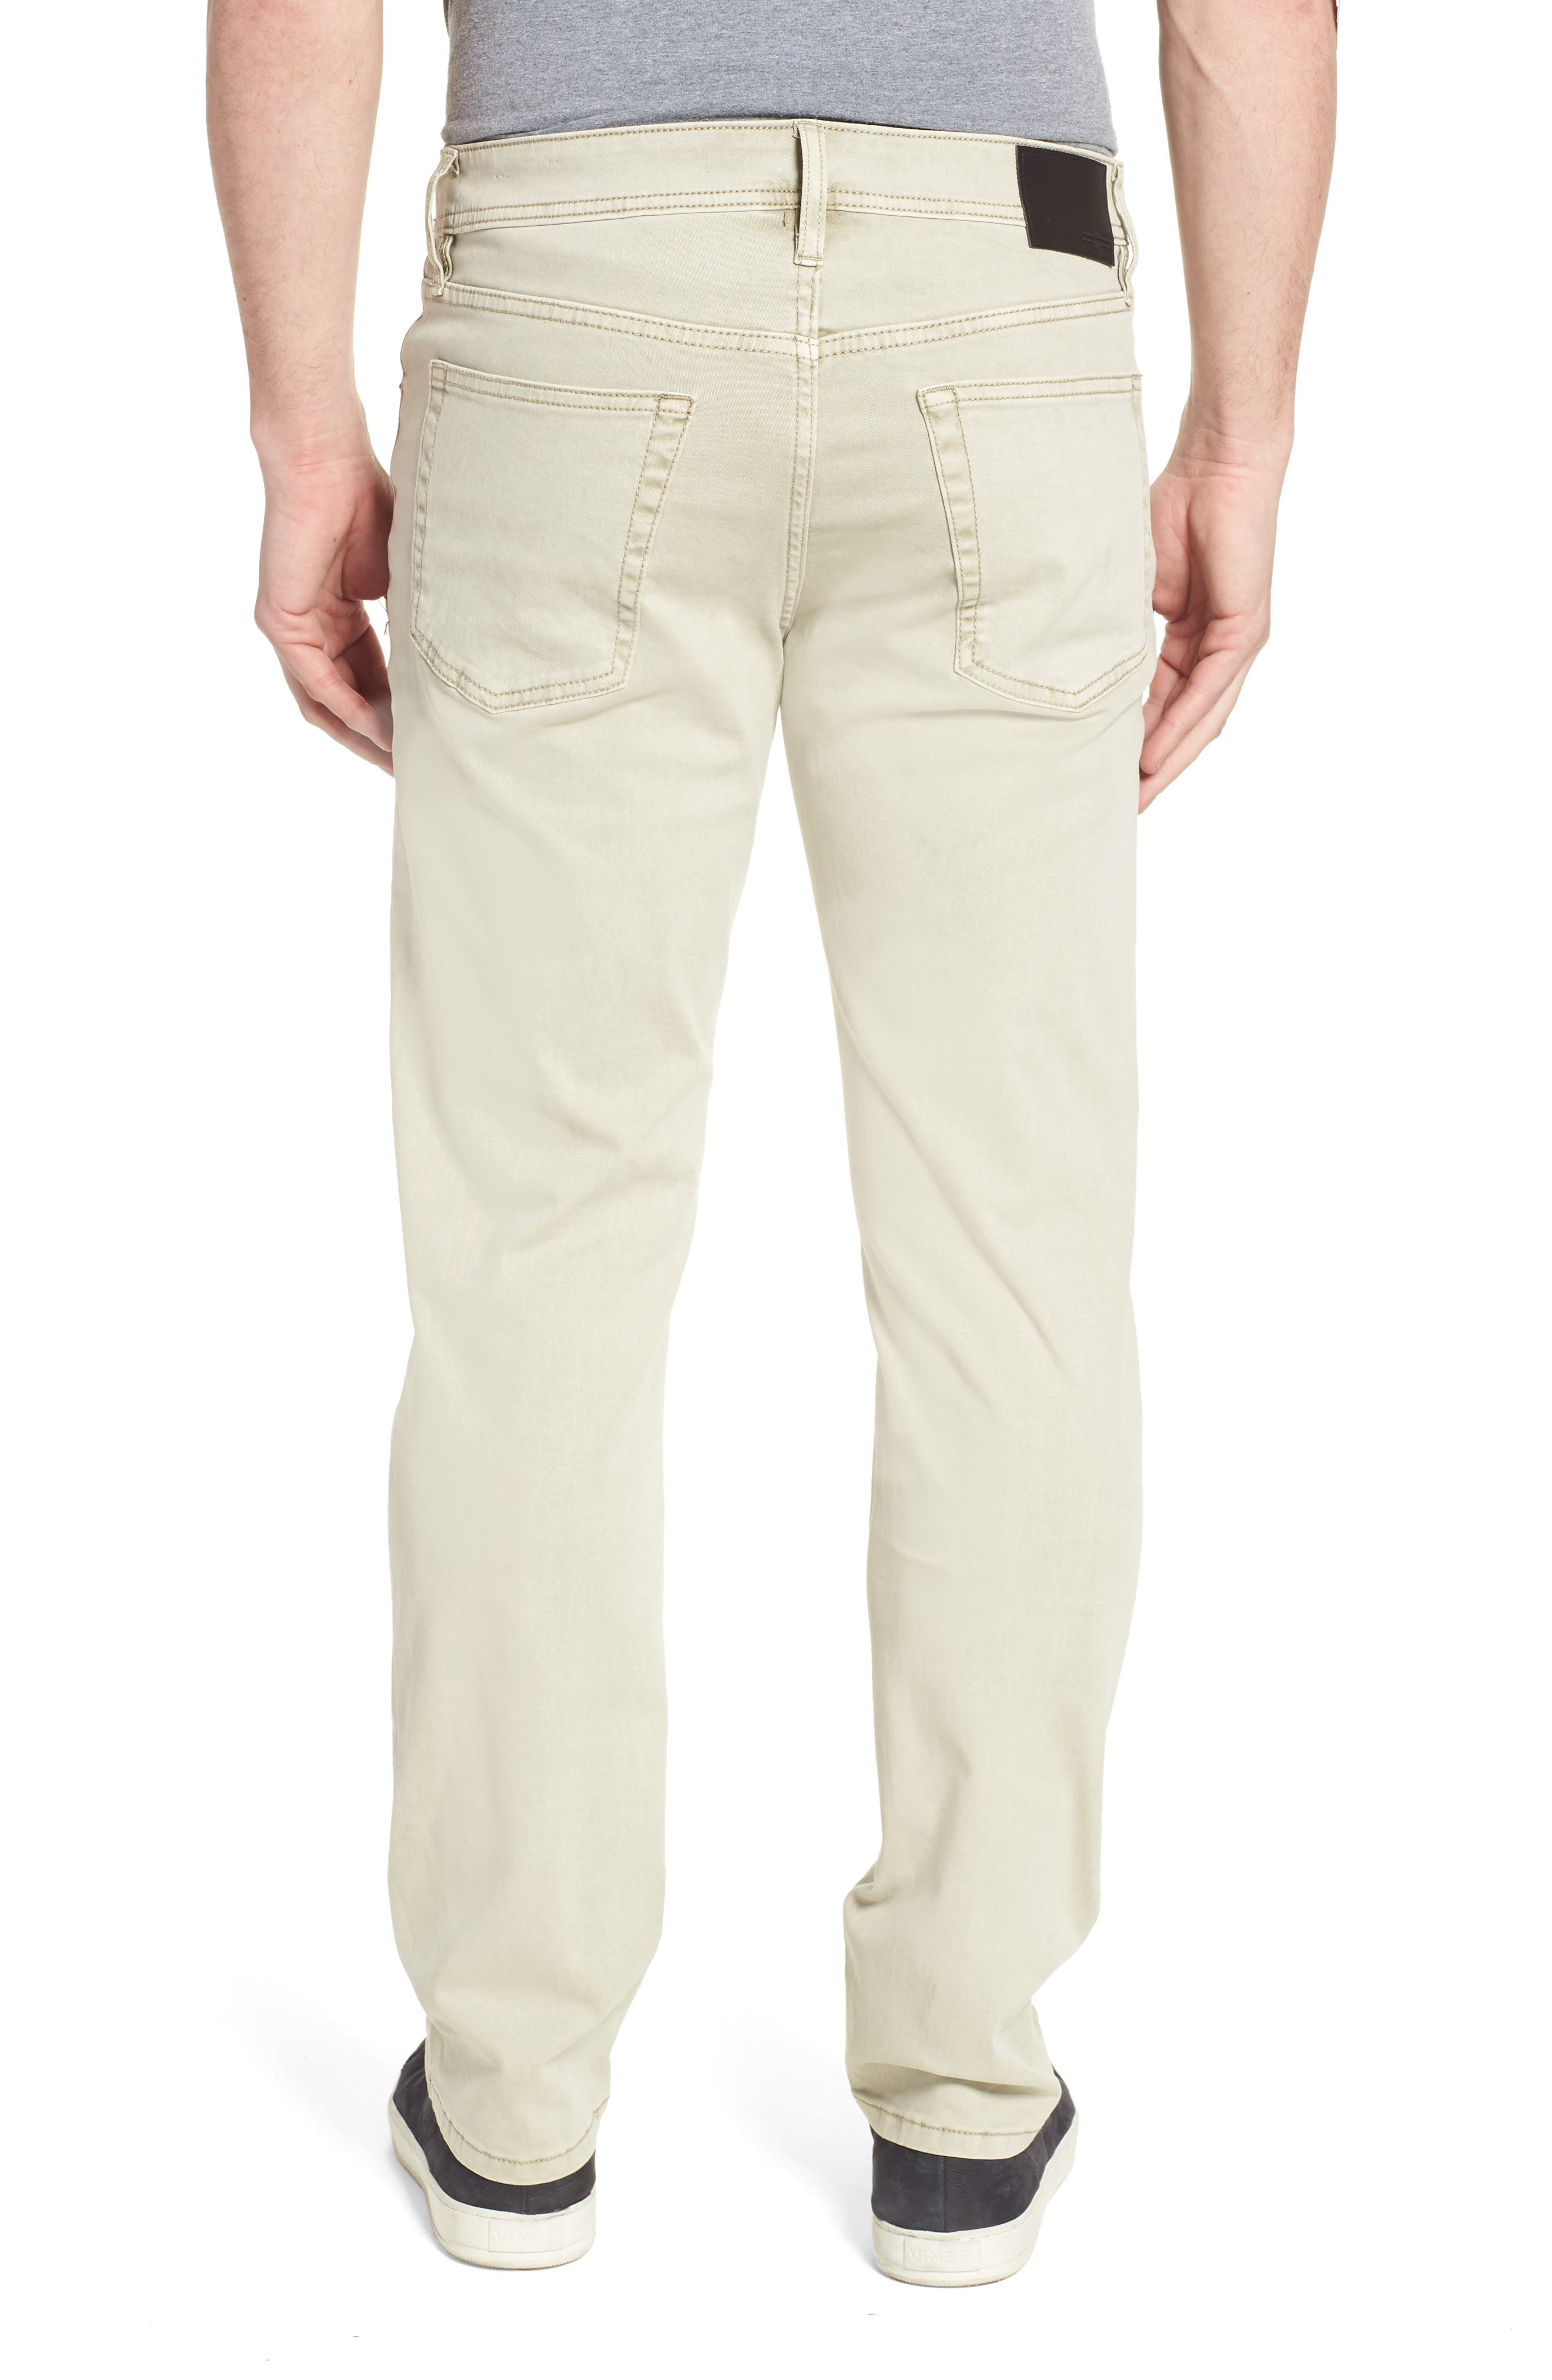 Jeans Co. Regent Relaxed Fit Straight Leg Jeans,                             Alternate thumbnail 2, color,                             SANDSTROM